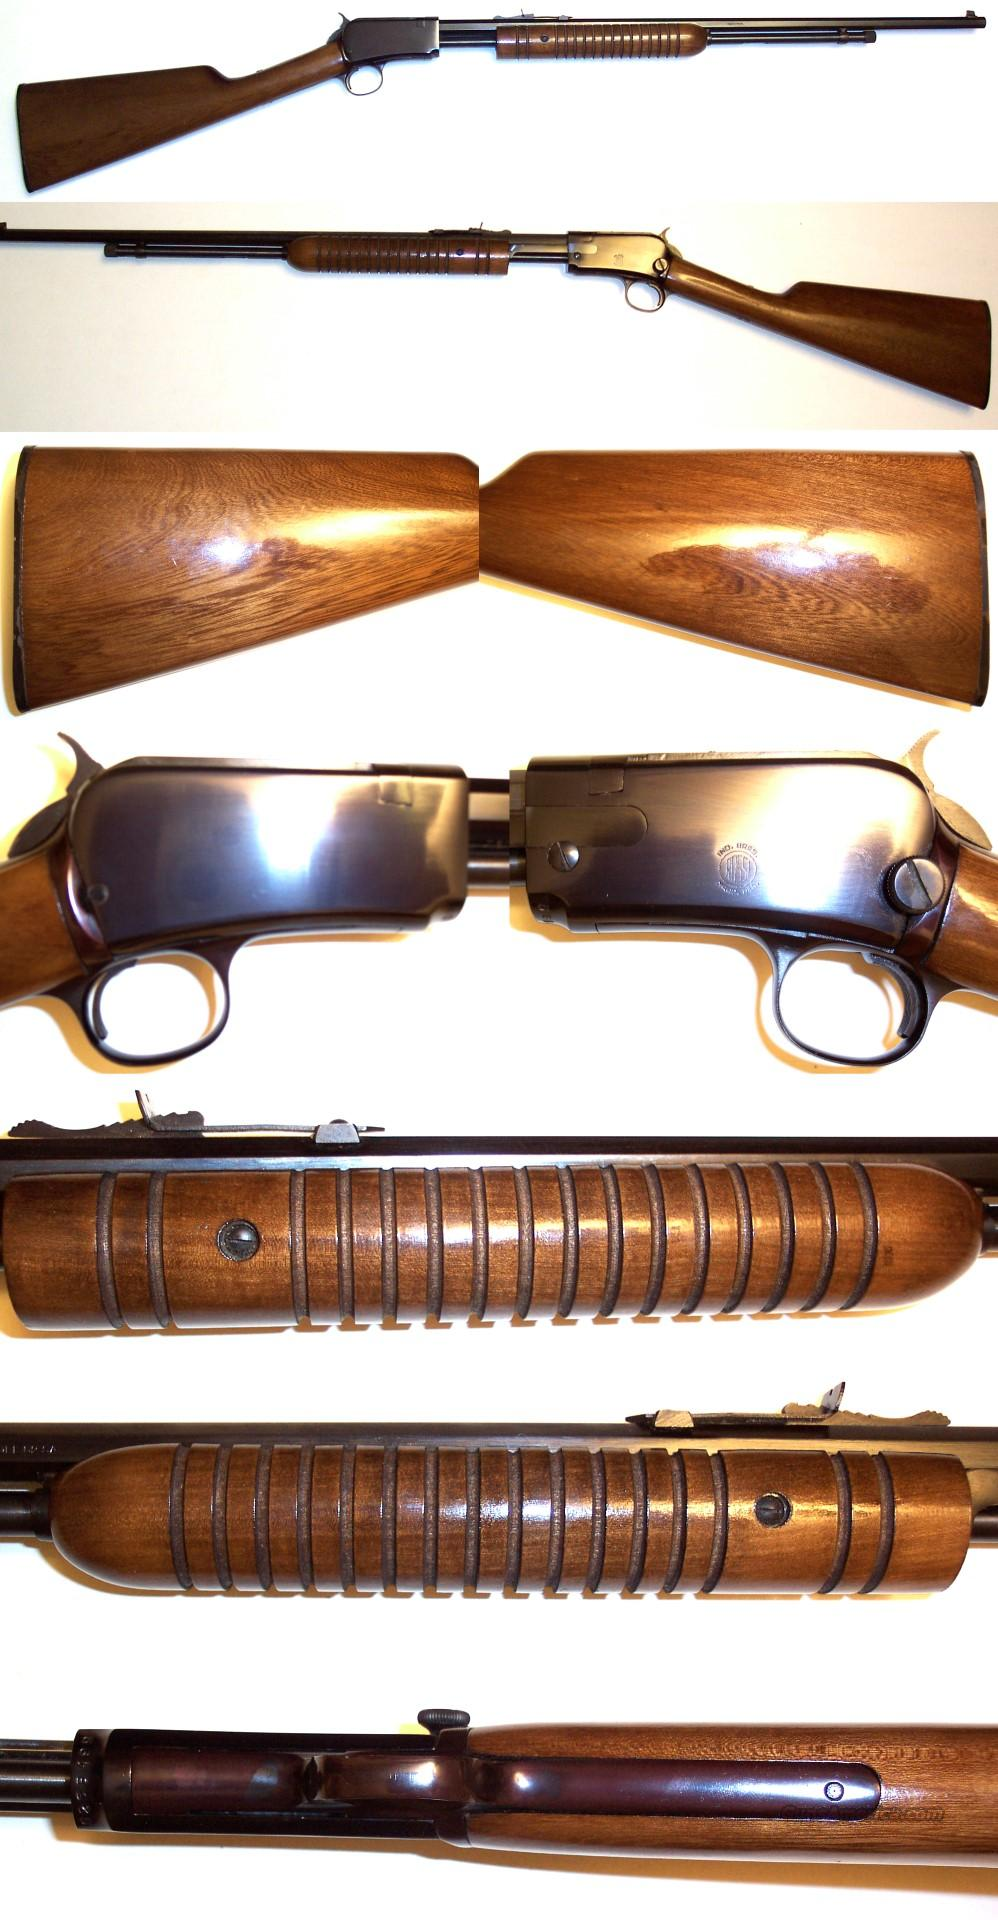 ROSSI MODEL 62 .22 LR PUMP ACTION RIFLE  Guns > Rifles > Rossi Rifles > Other